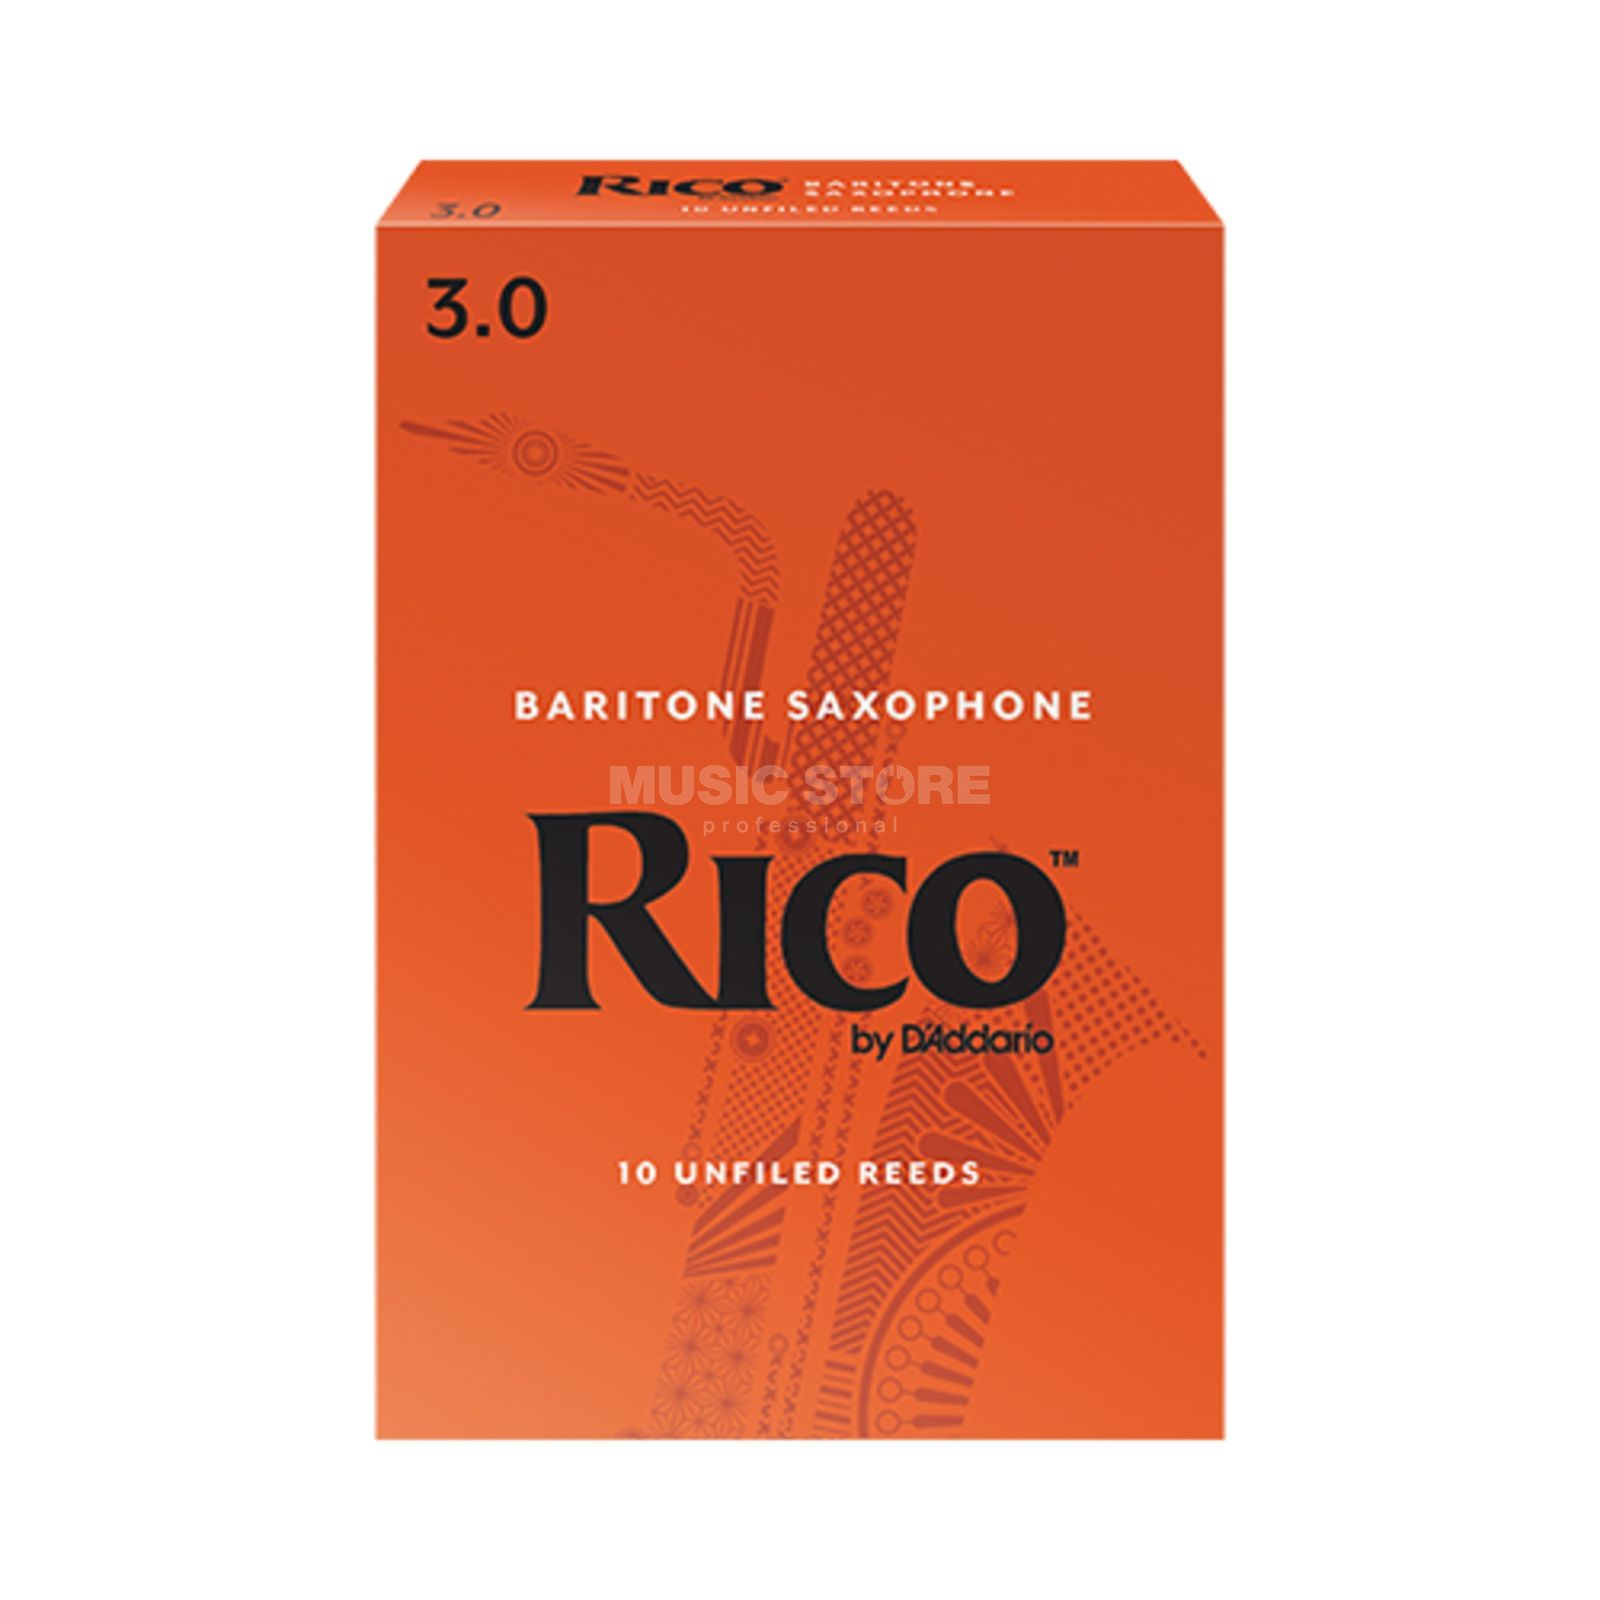 D'Addario Woodwinds RICO Baritone Sax 3 Box of 10 Reeds Product Image